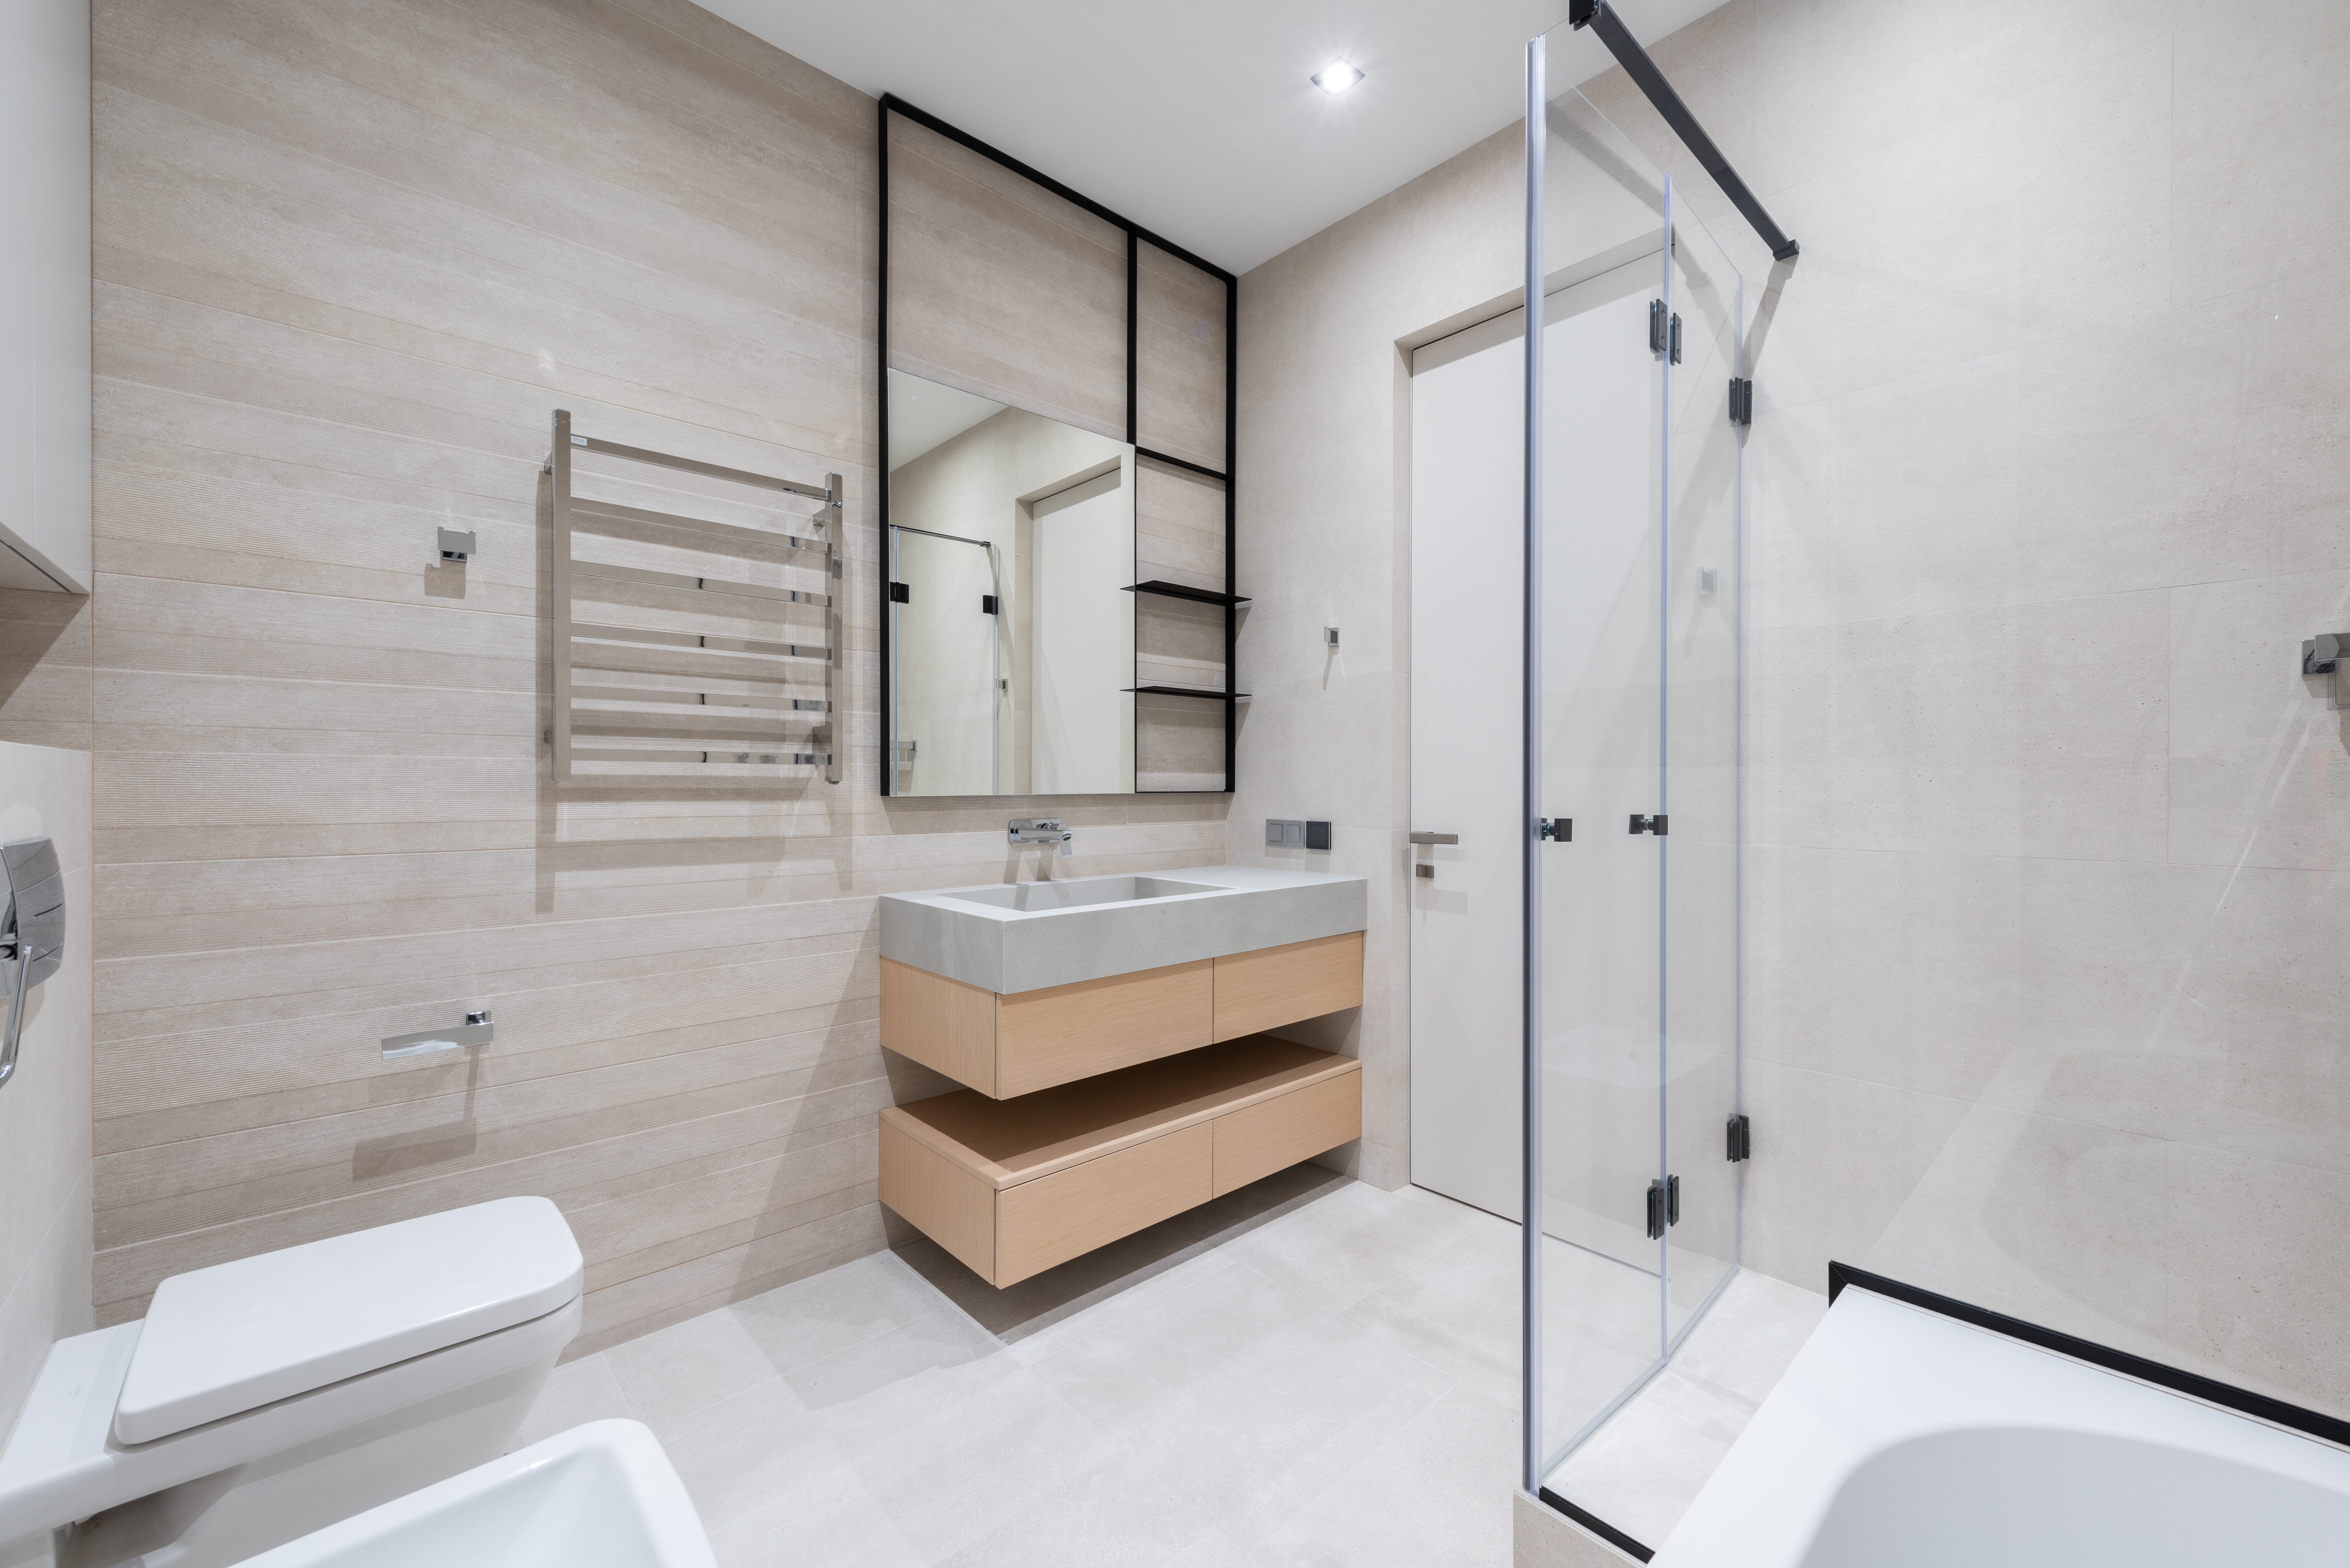 bathroom with toilet and bathtub near sink on counter